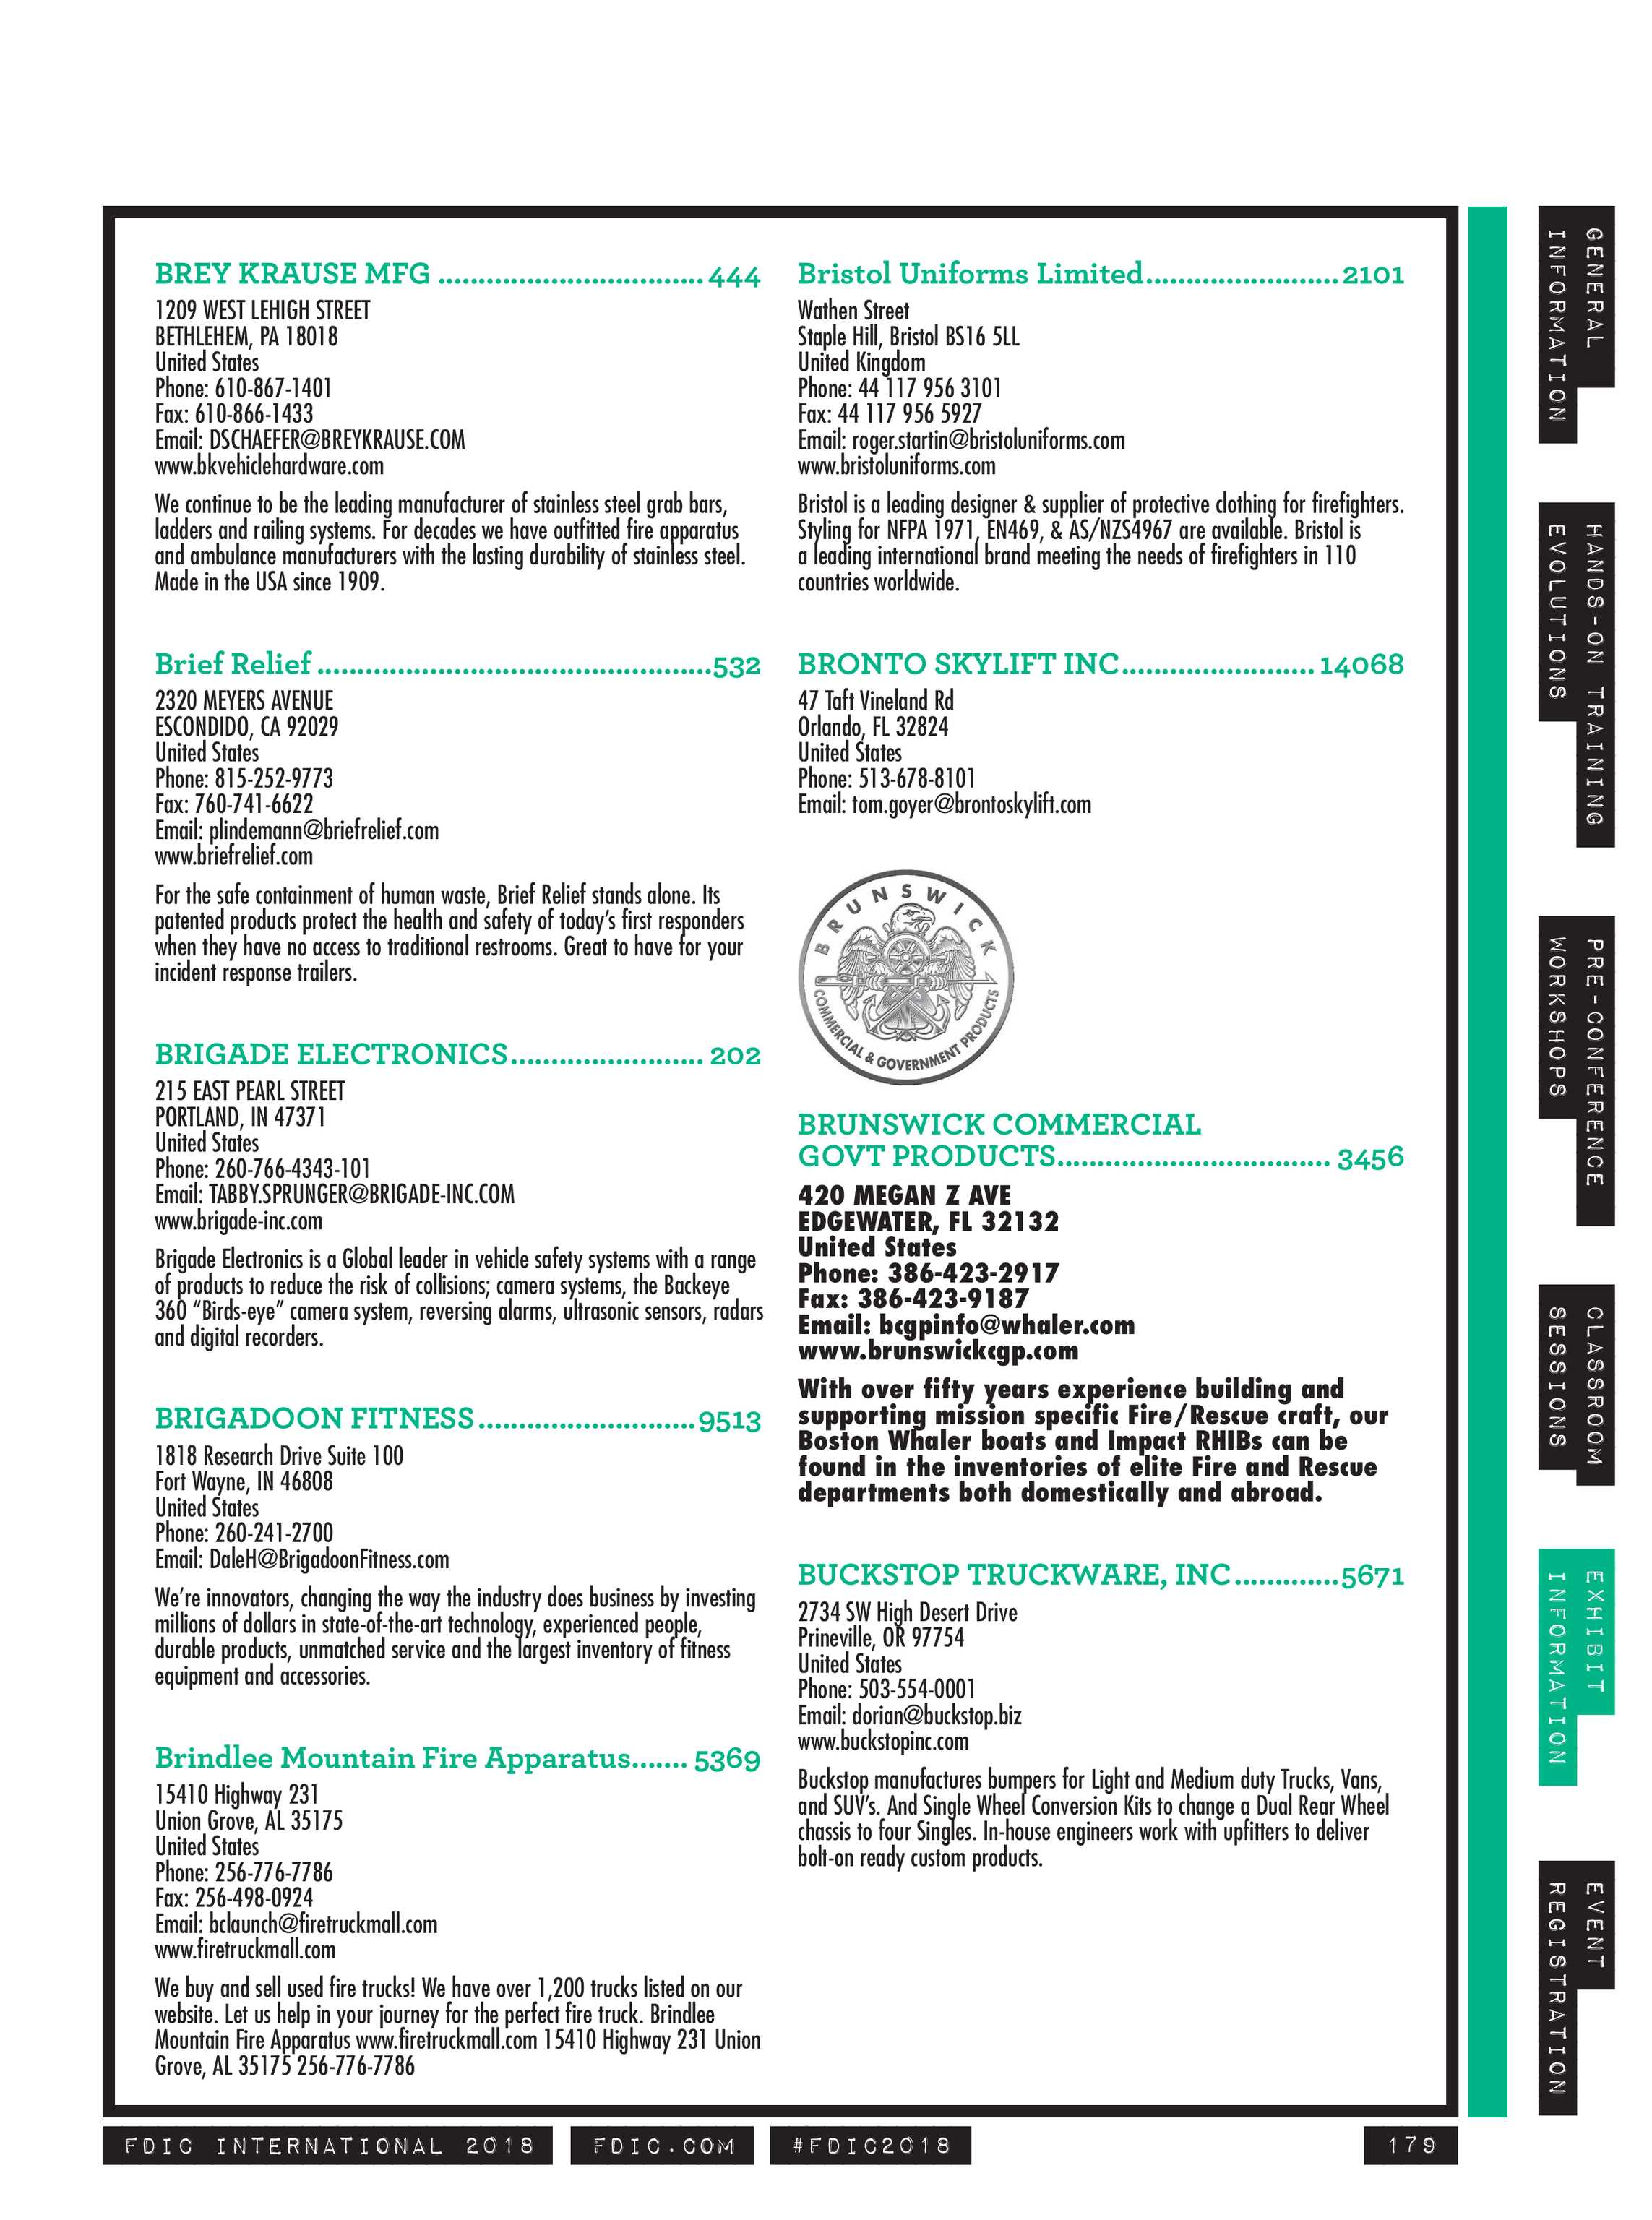 Pennwell Supplements - FDIC 2018 Show Guide - page 179